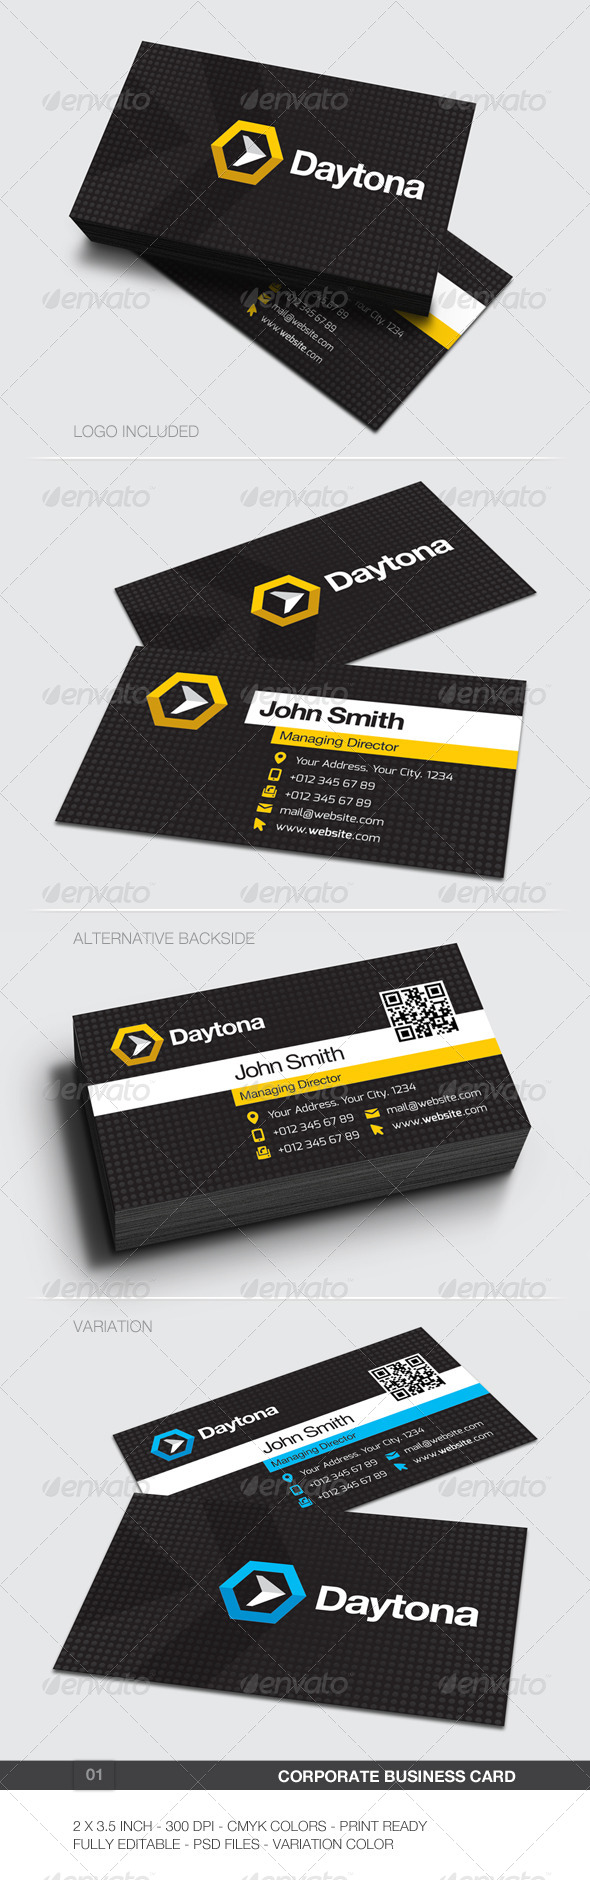 GraphicRiver Corporate Business Card 01 5886583